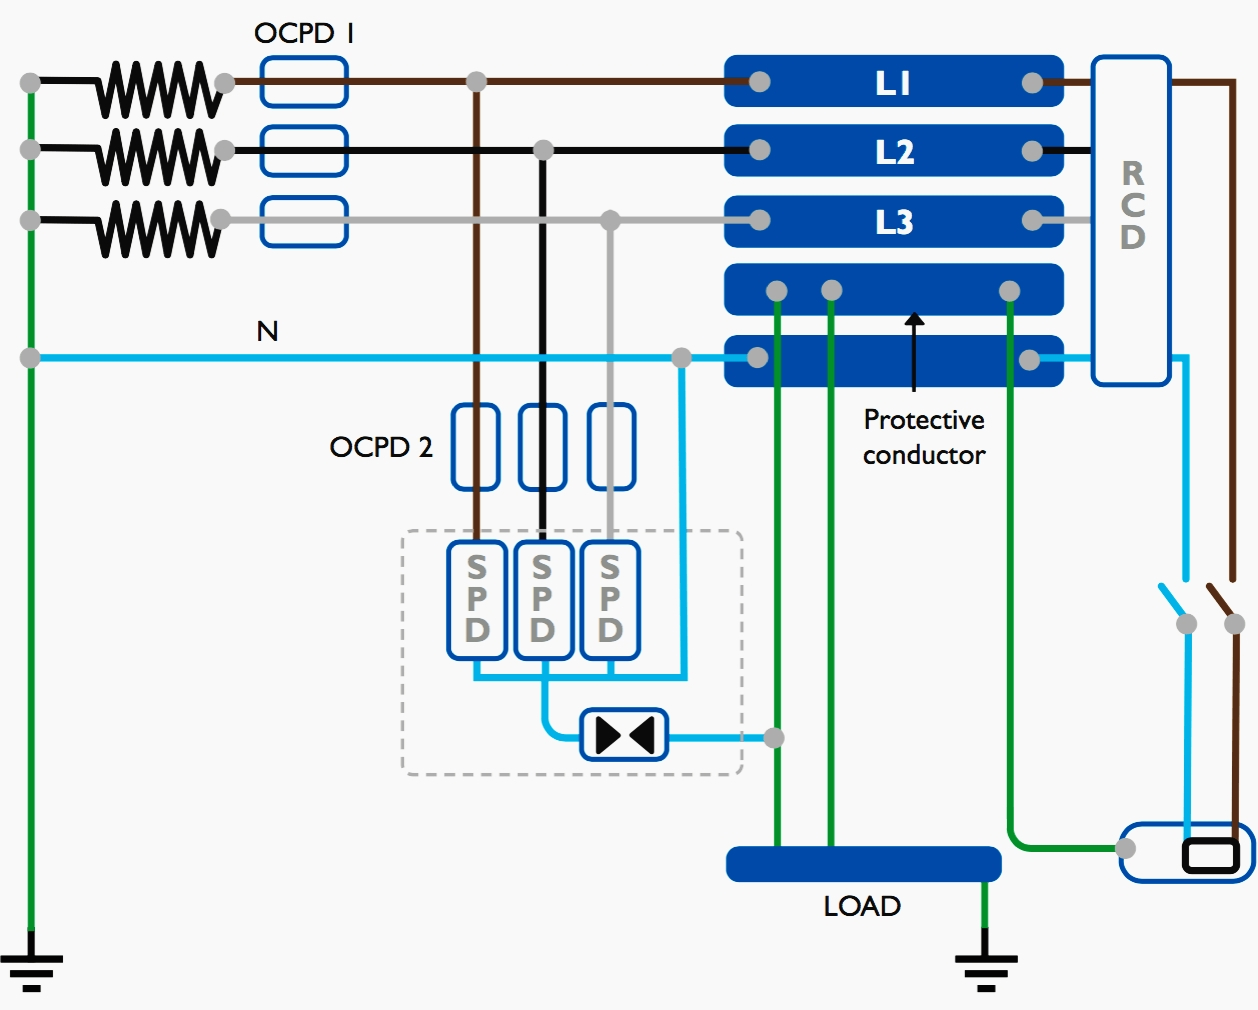 surge protector wiring diagram Download-surge protector wiring diagram Collection Beautiful Surge Protector Wiring Diagram Crest Best for 1 DOWNLOAD Wiring Diagram 4-d